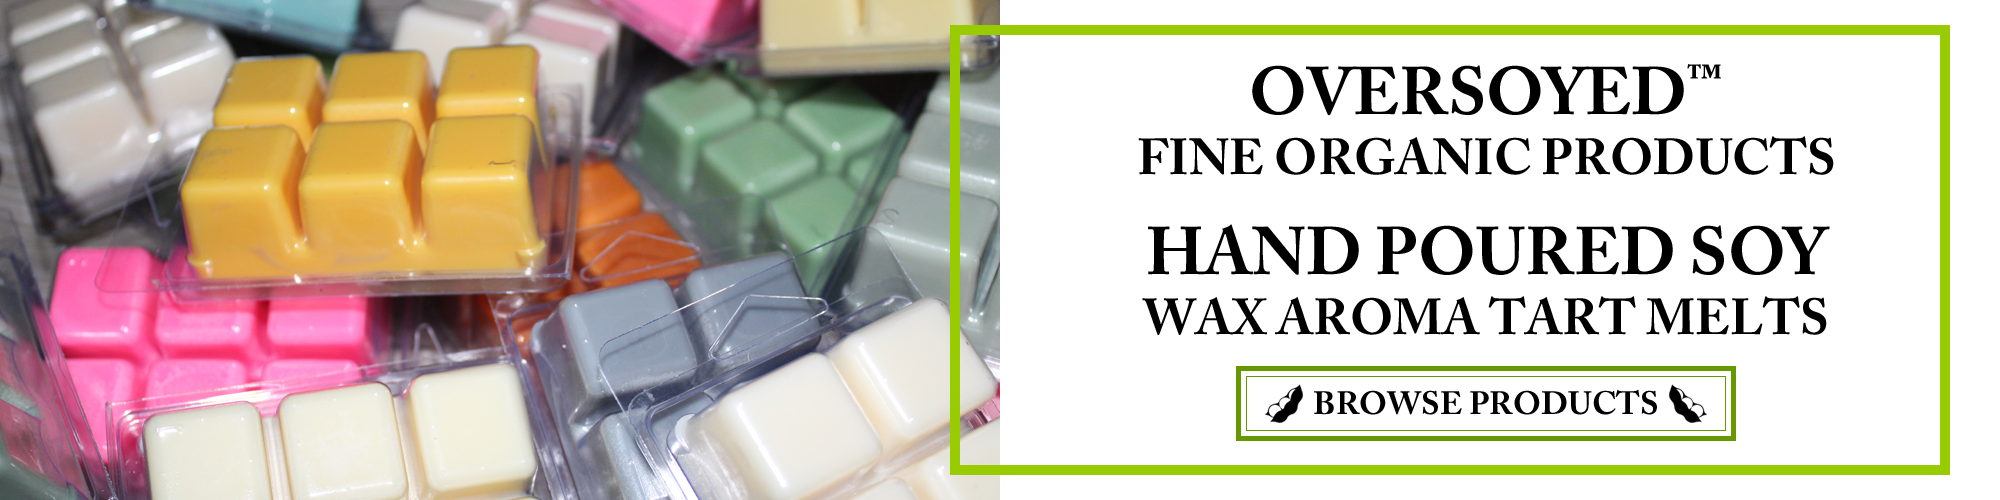 OverSoyed Fine Organic Products - Hand Poured Soy Wax Aroma Tart Melts